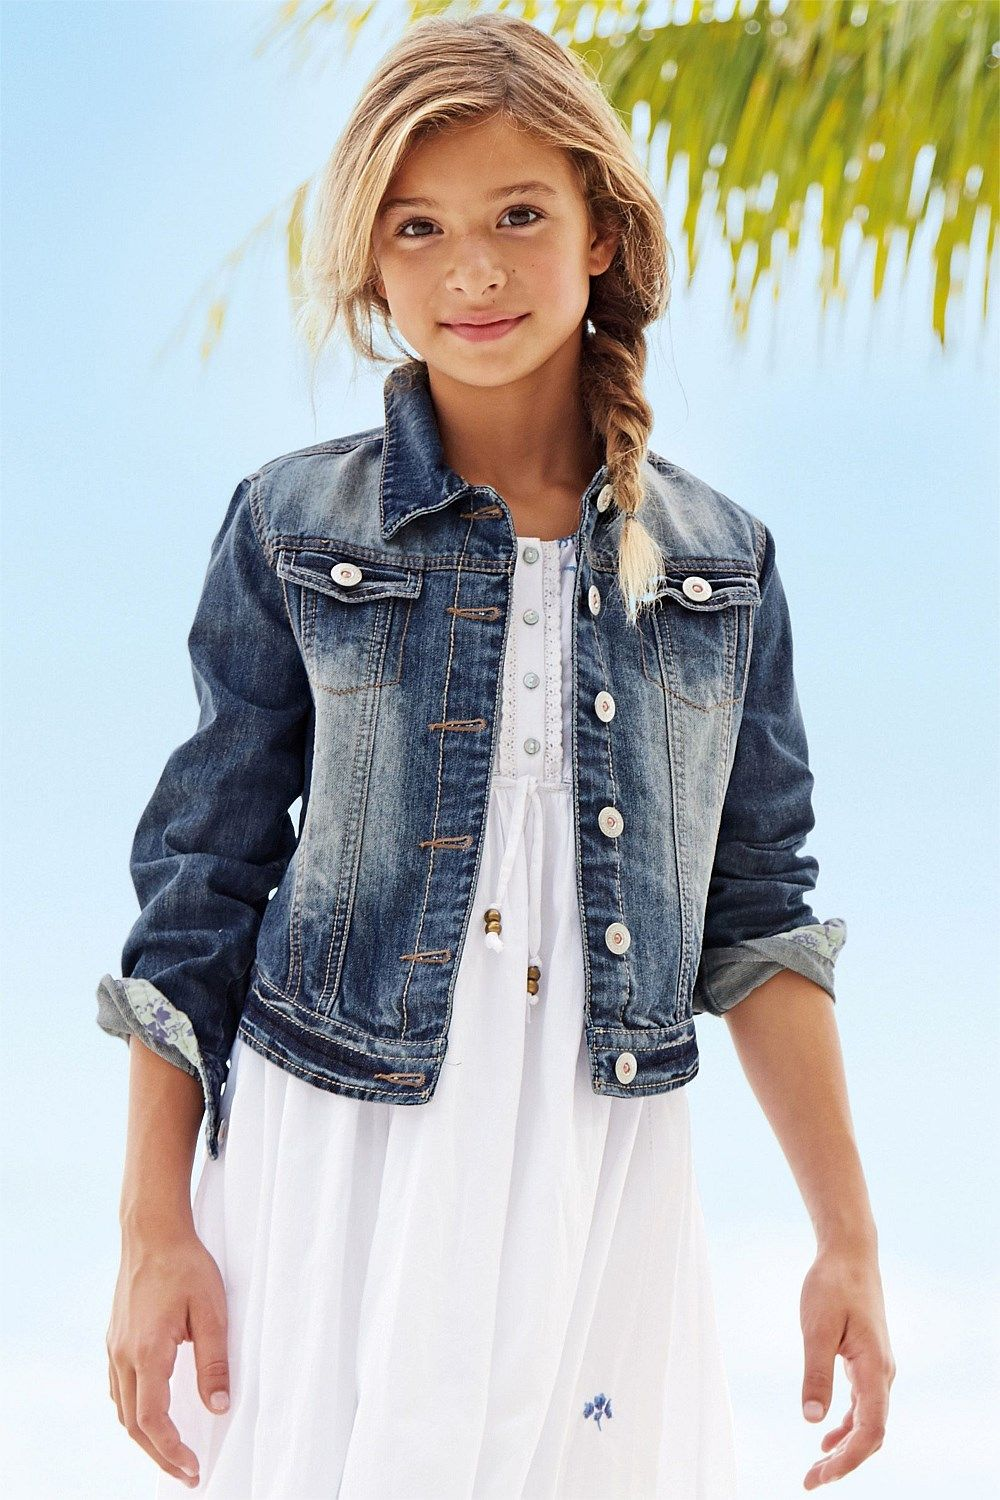 Girls Clothing Online - 3 to 16 years - Next Authentic Denim ...